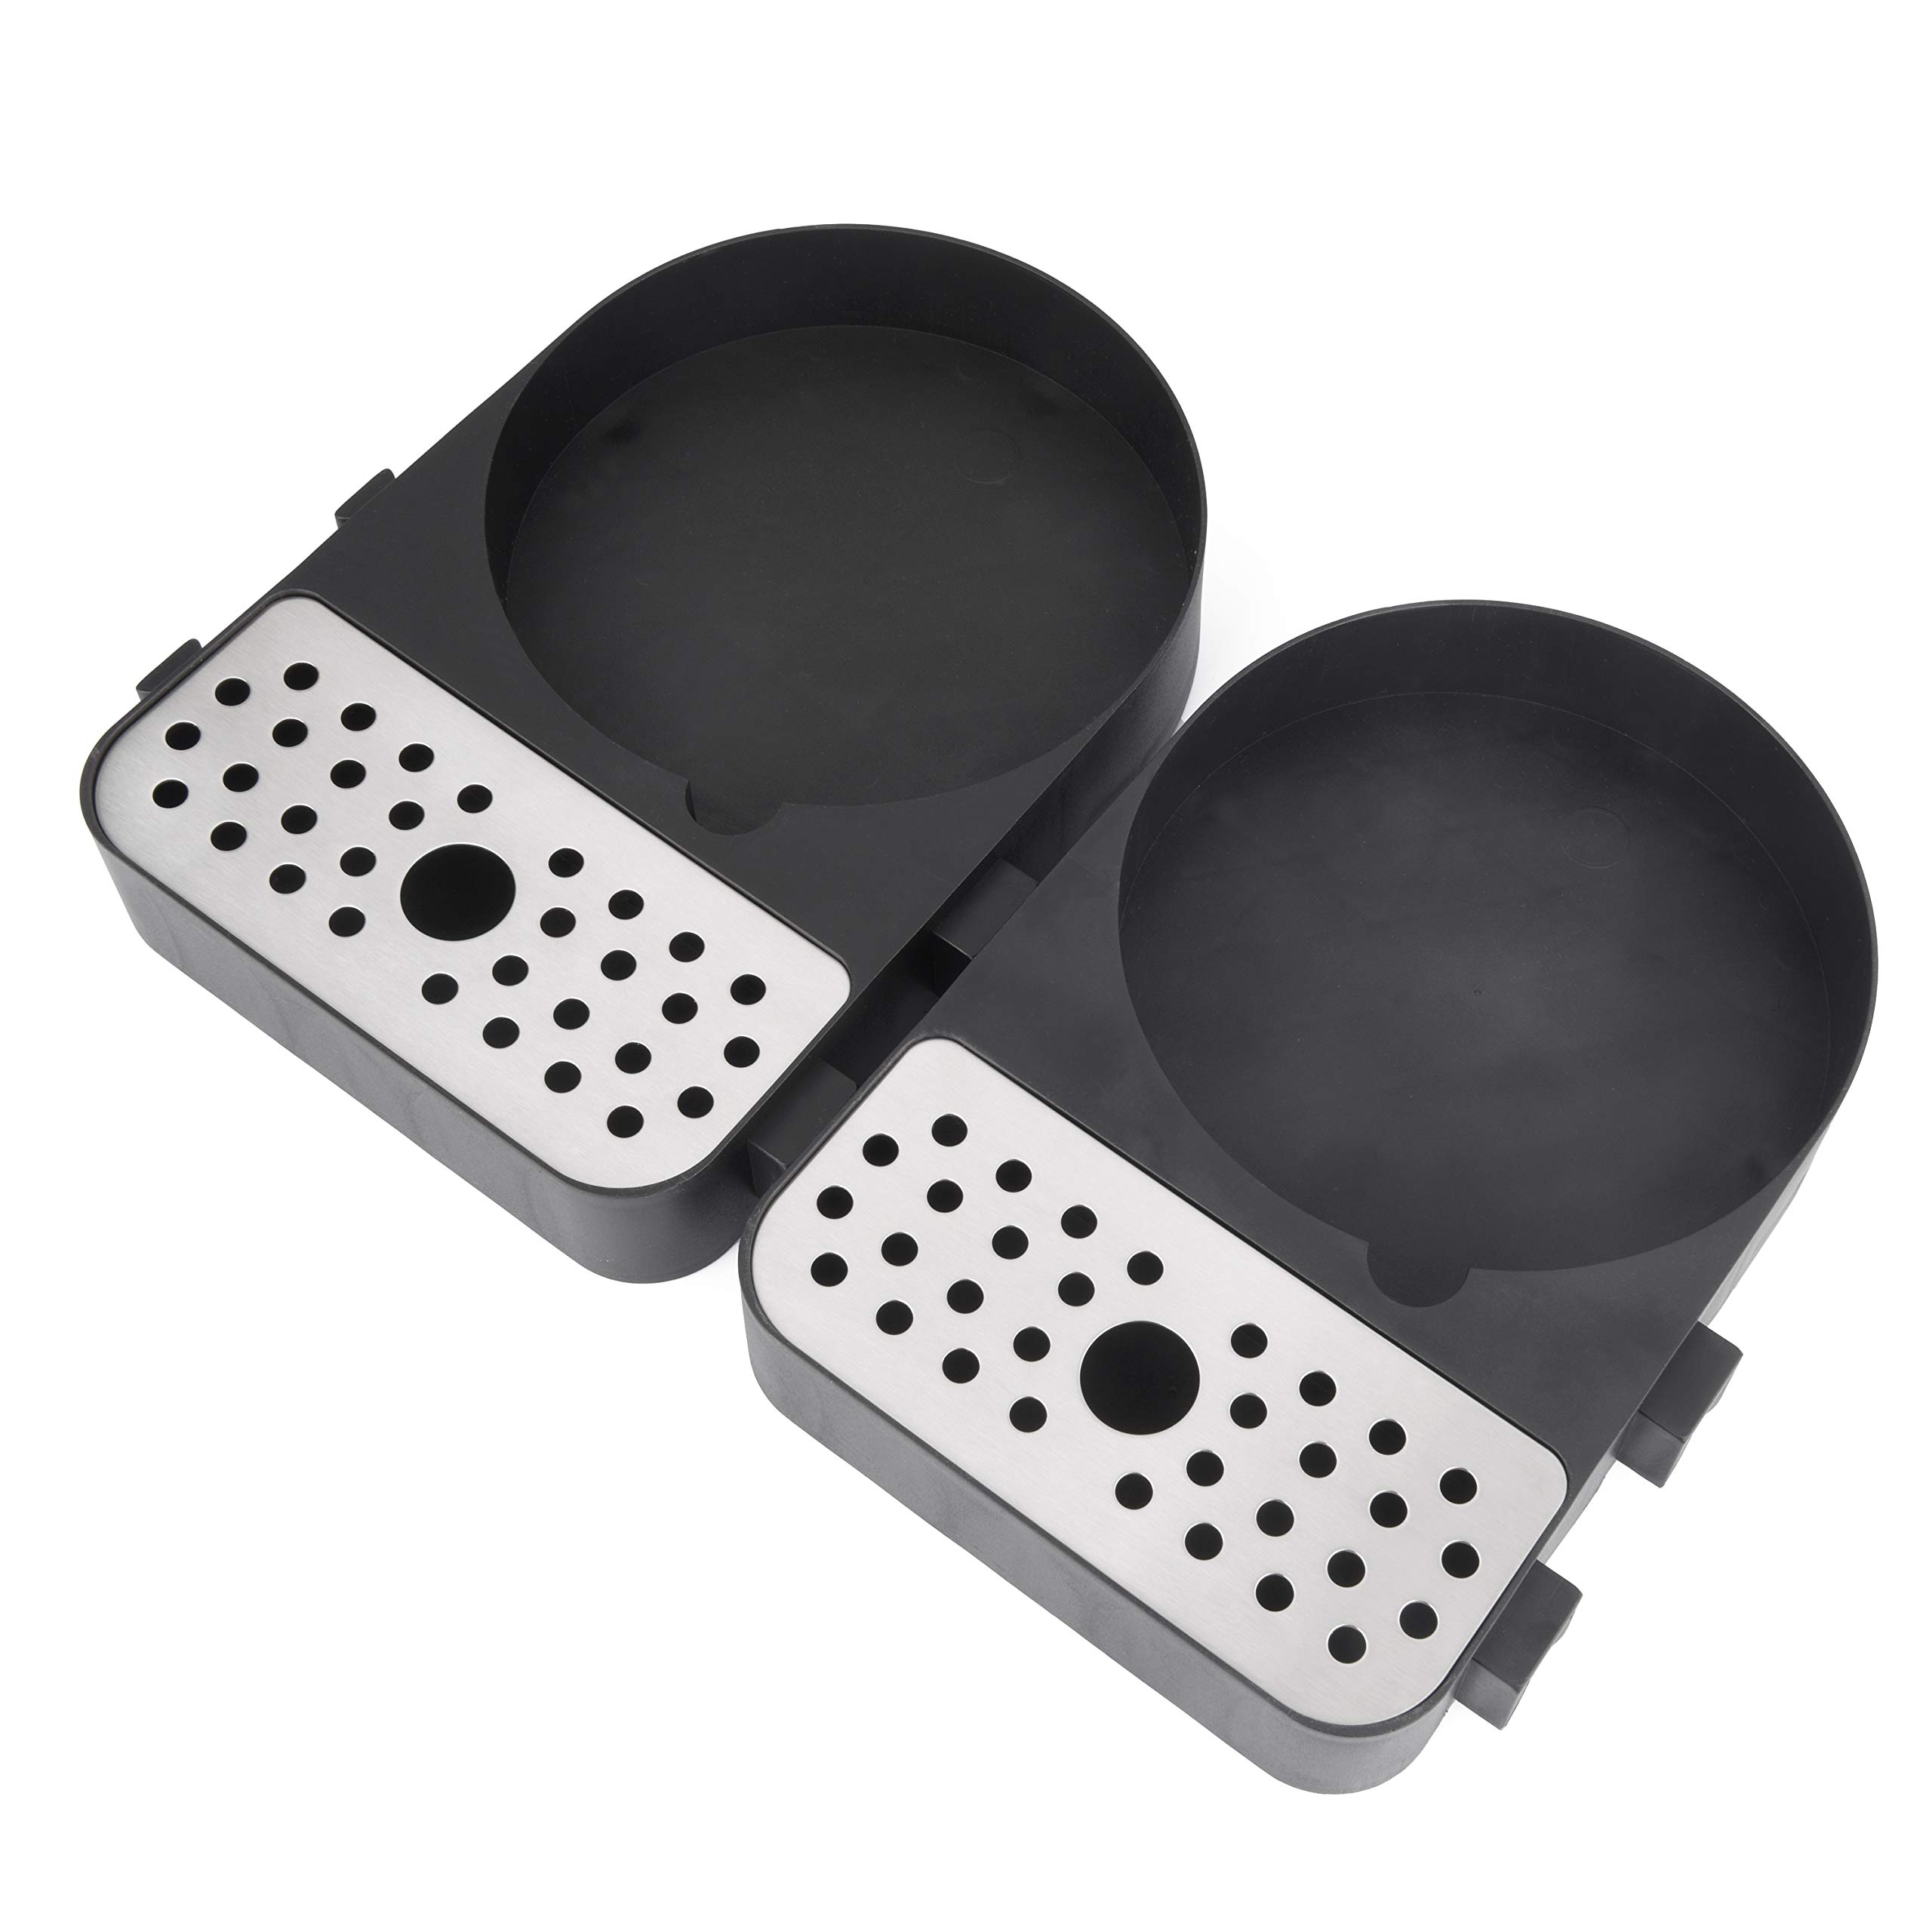 Cresimo Airpot Drip Trays / 2 Piece Set/Modular Design to hold as many Coffee Airpots or Carafes as necessary! Airpot has to be 6'' Wide or Less to Fit by Cresimo